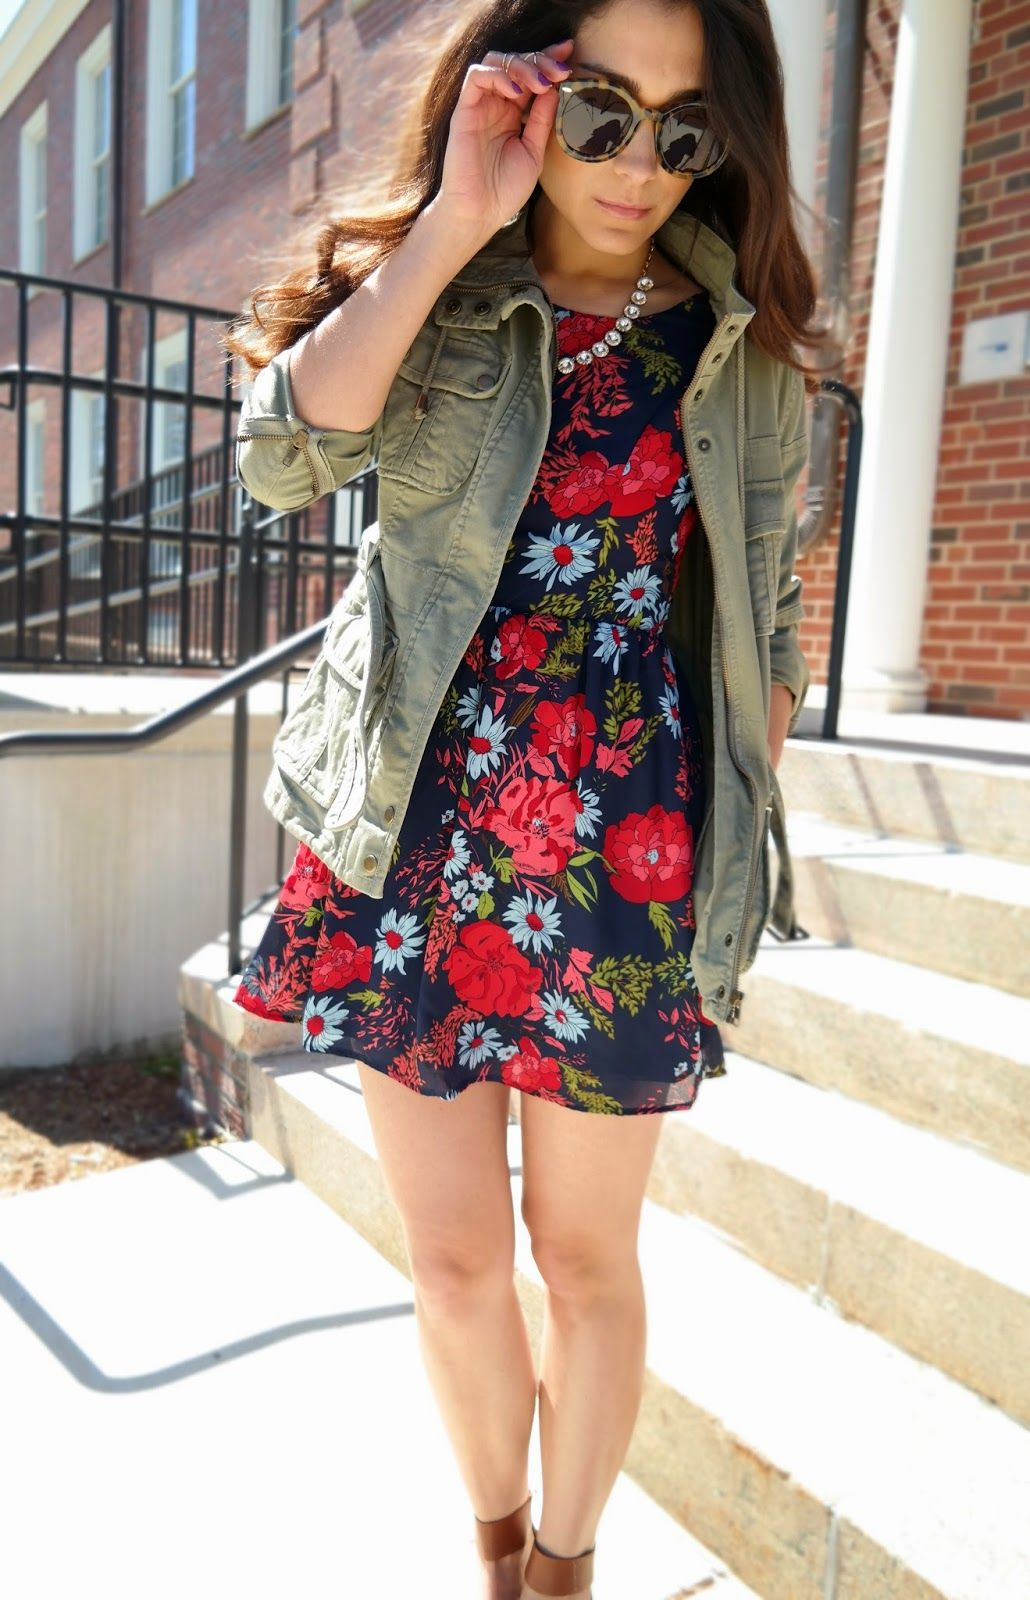 Military Jacket and floral dress